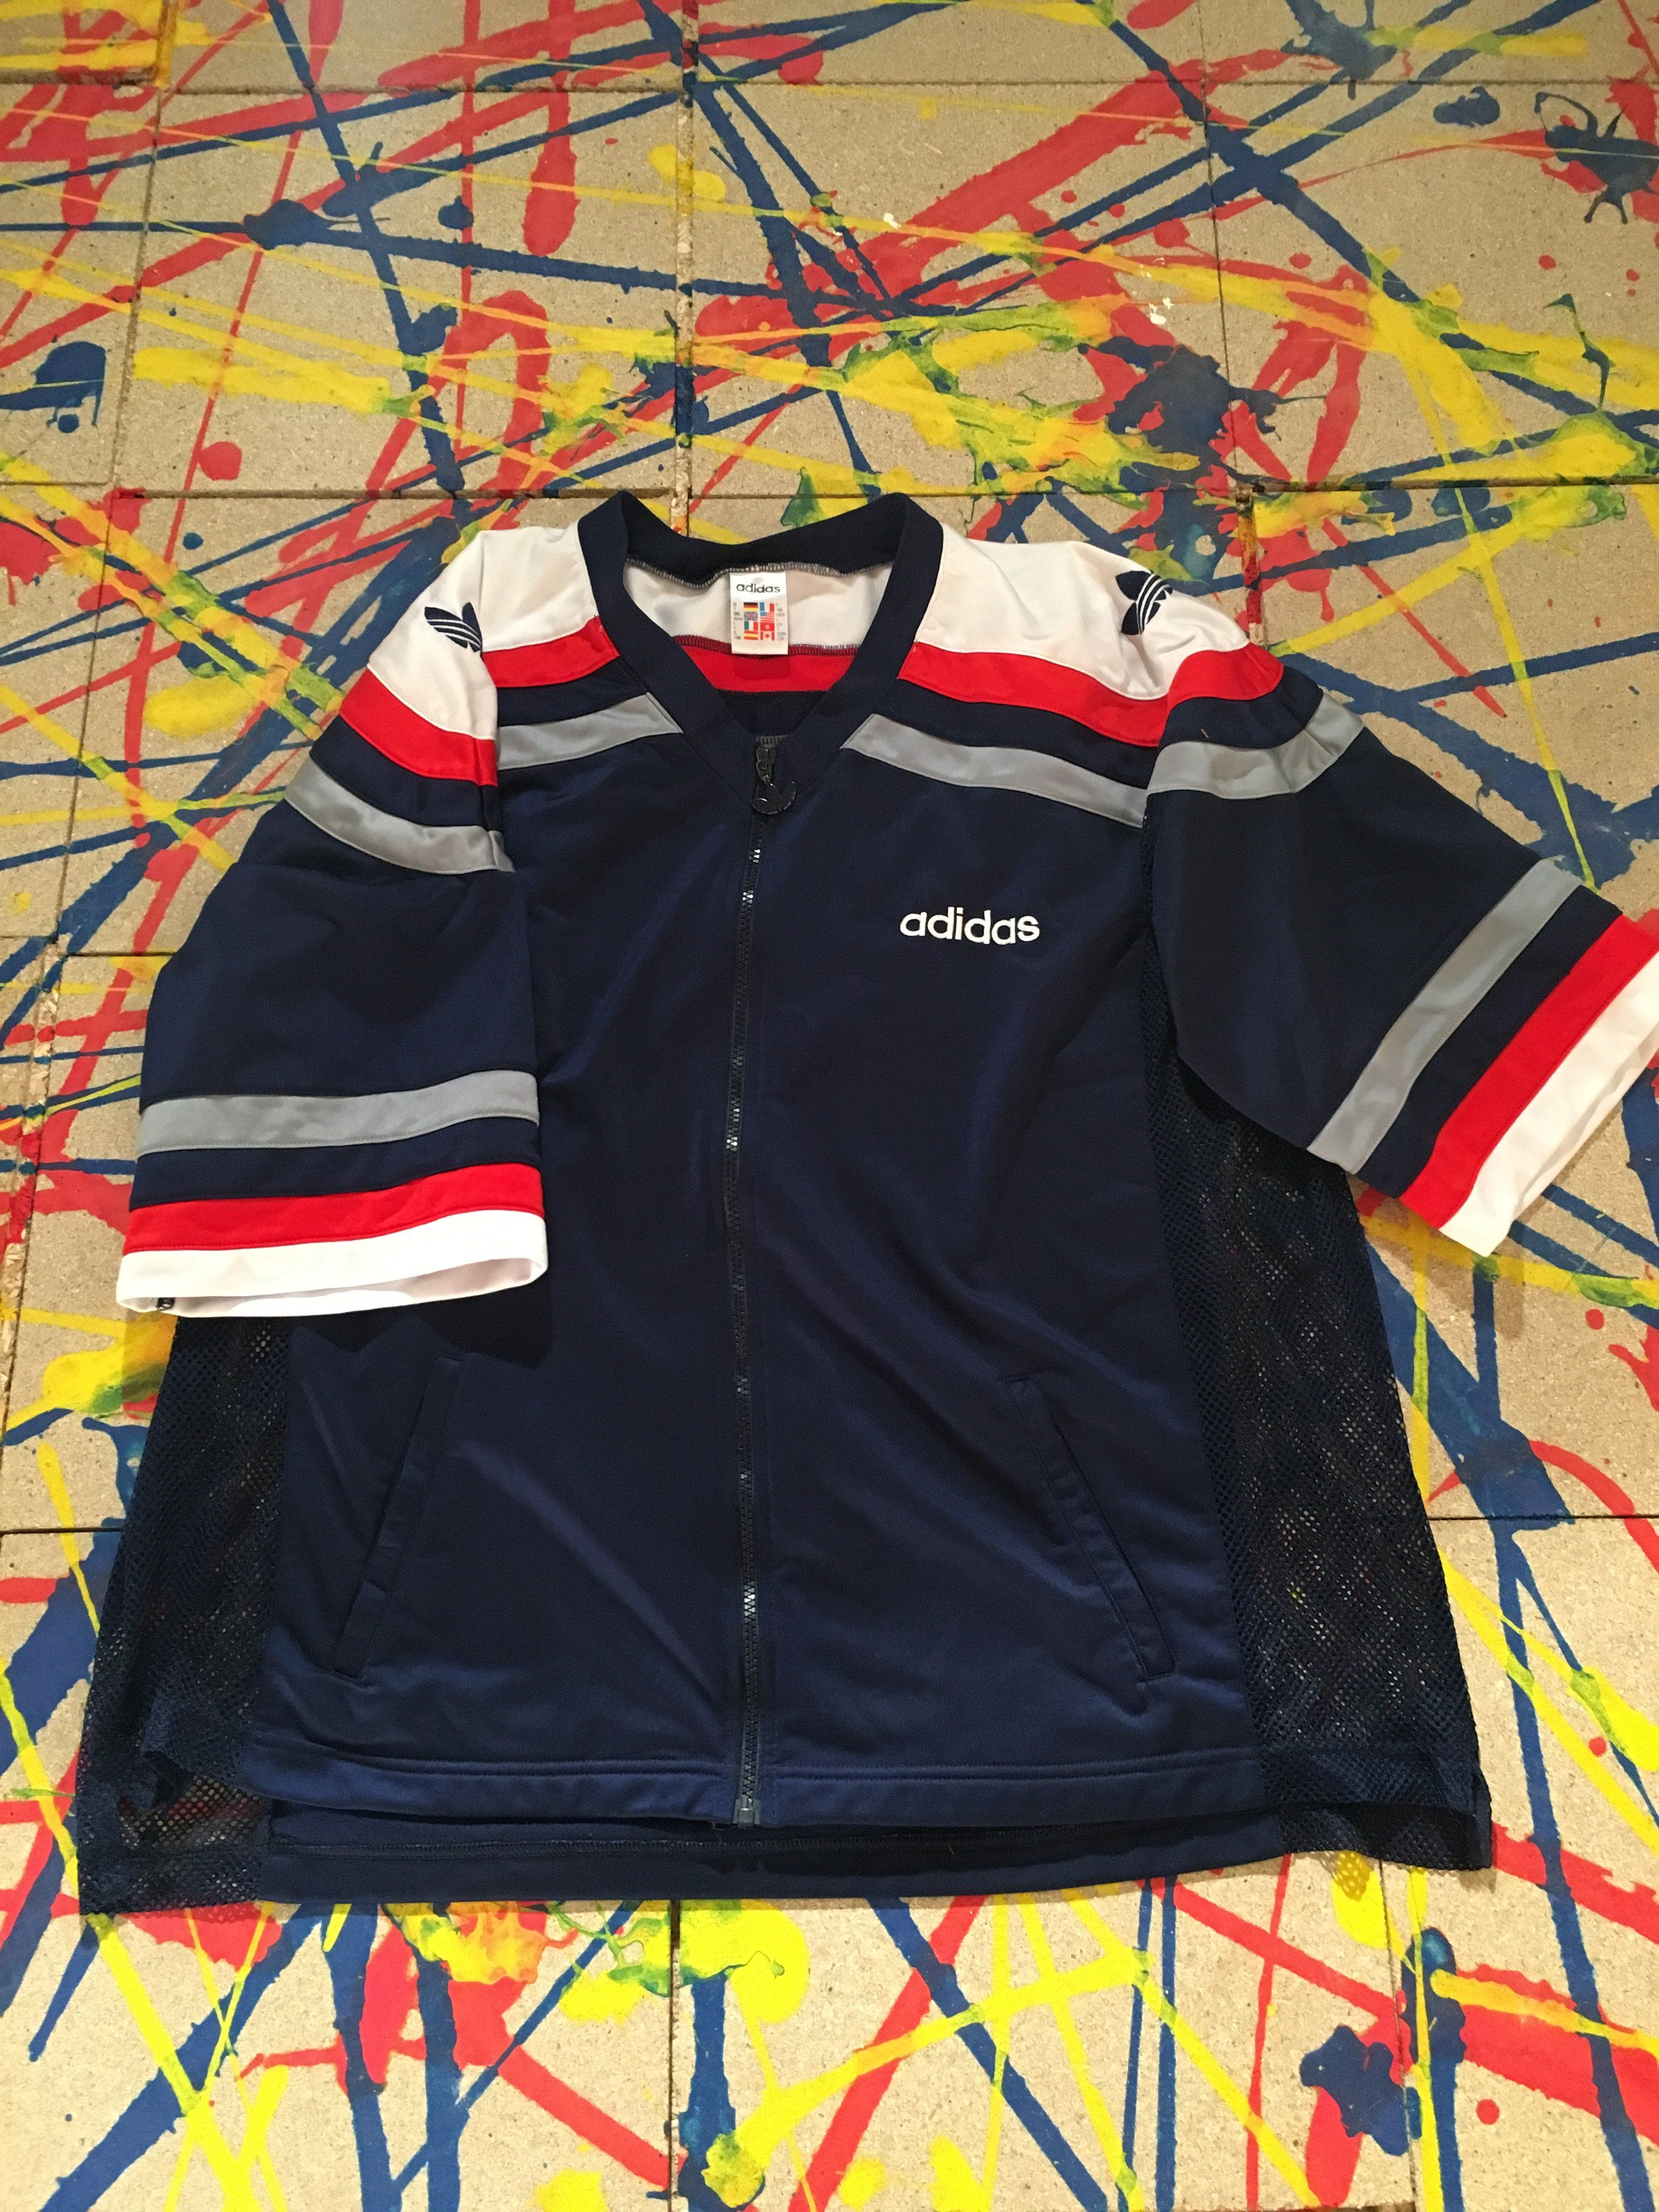 1cbe4e29eabd 90s VINTAGE ADIDAS SHORT SLEEVE TRACK TOP. FROM THE LEGENDARY POPPERS  SERIES. 9 10 CONDITION